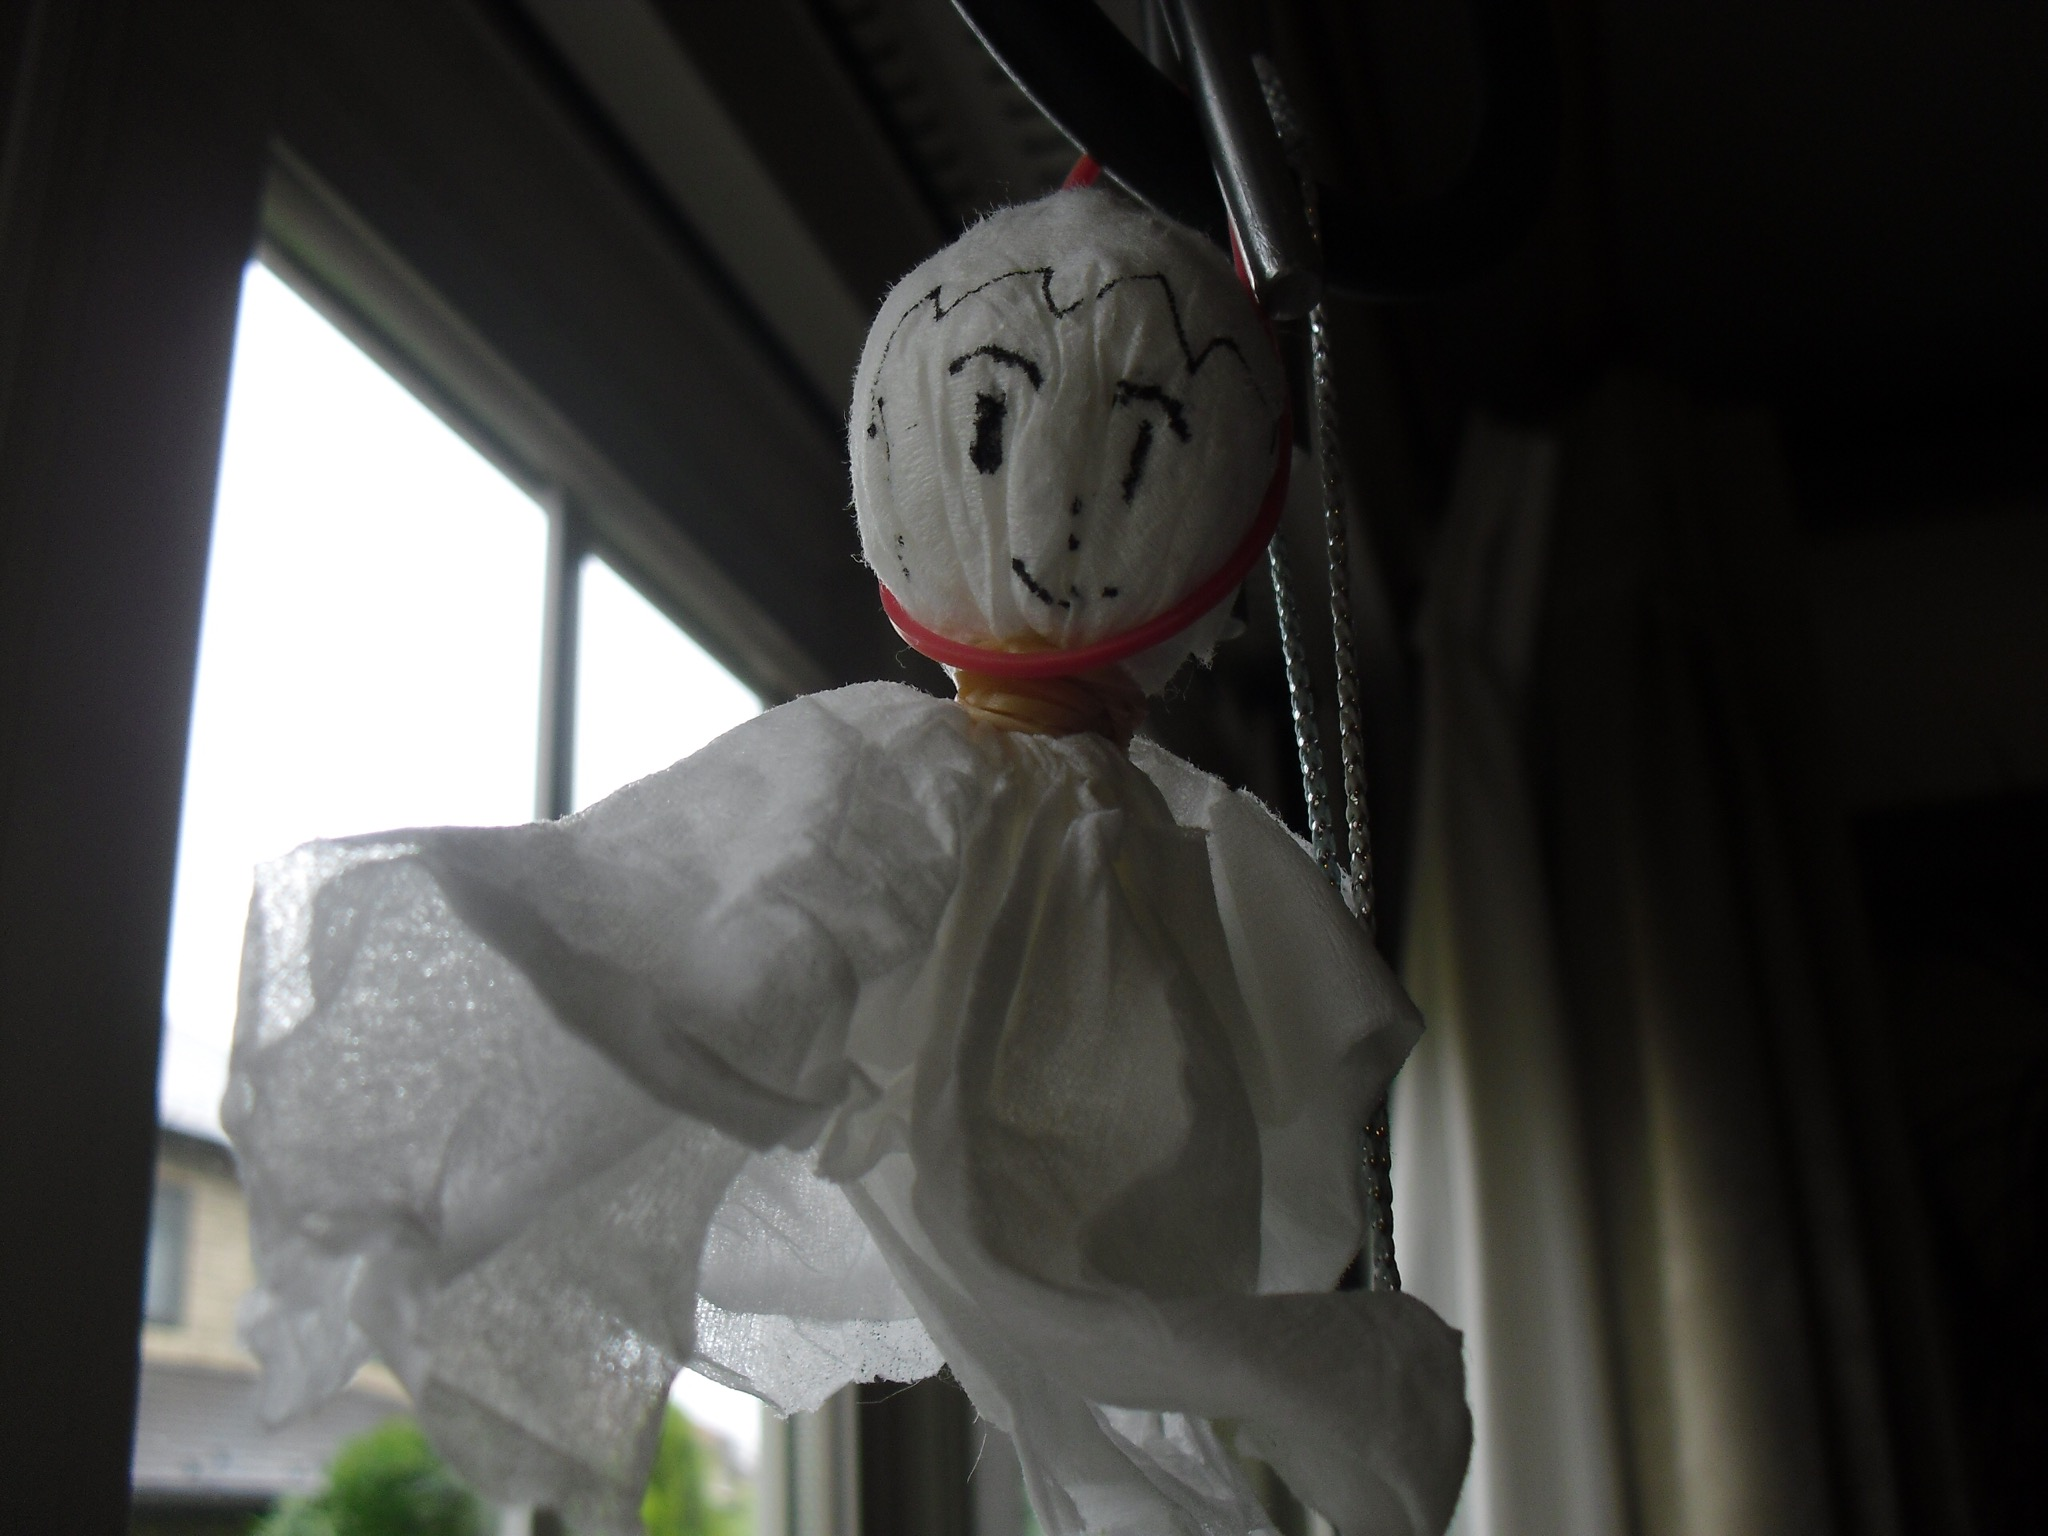 One indication that I have not experienced the persistent rainy season yet is that I haven't seen any 'thru thru bozo' hanging in windows or outside. They are said to be common when people want the rain to go away. Something to look forward to! (Image source: japanesemythologywordpress.com)